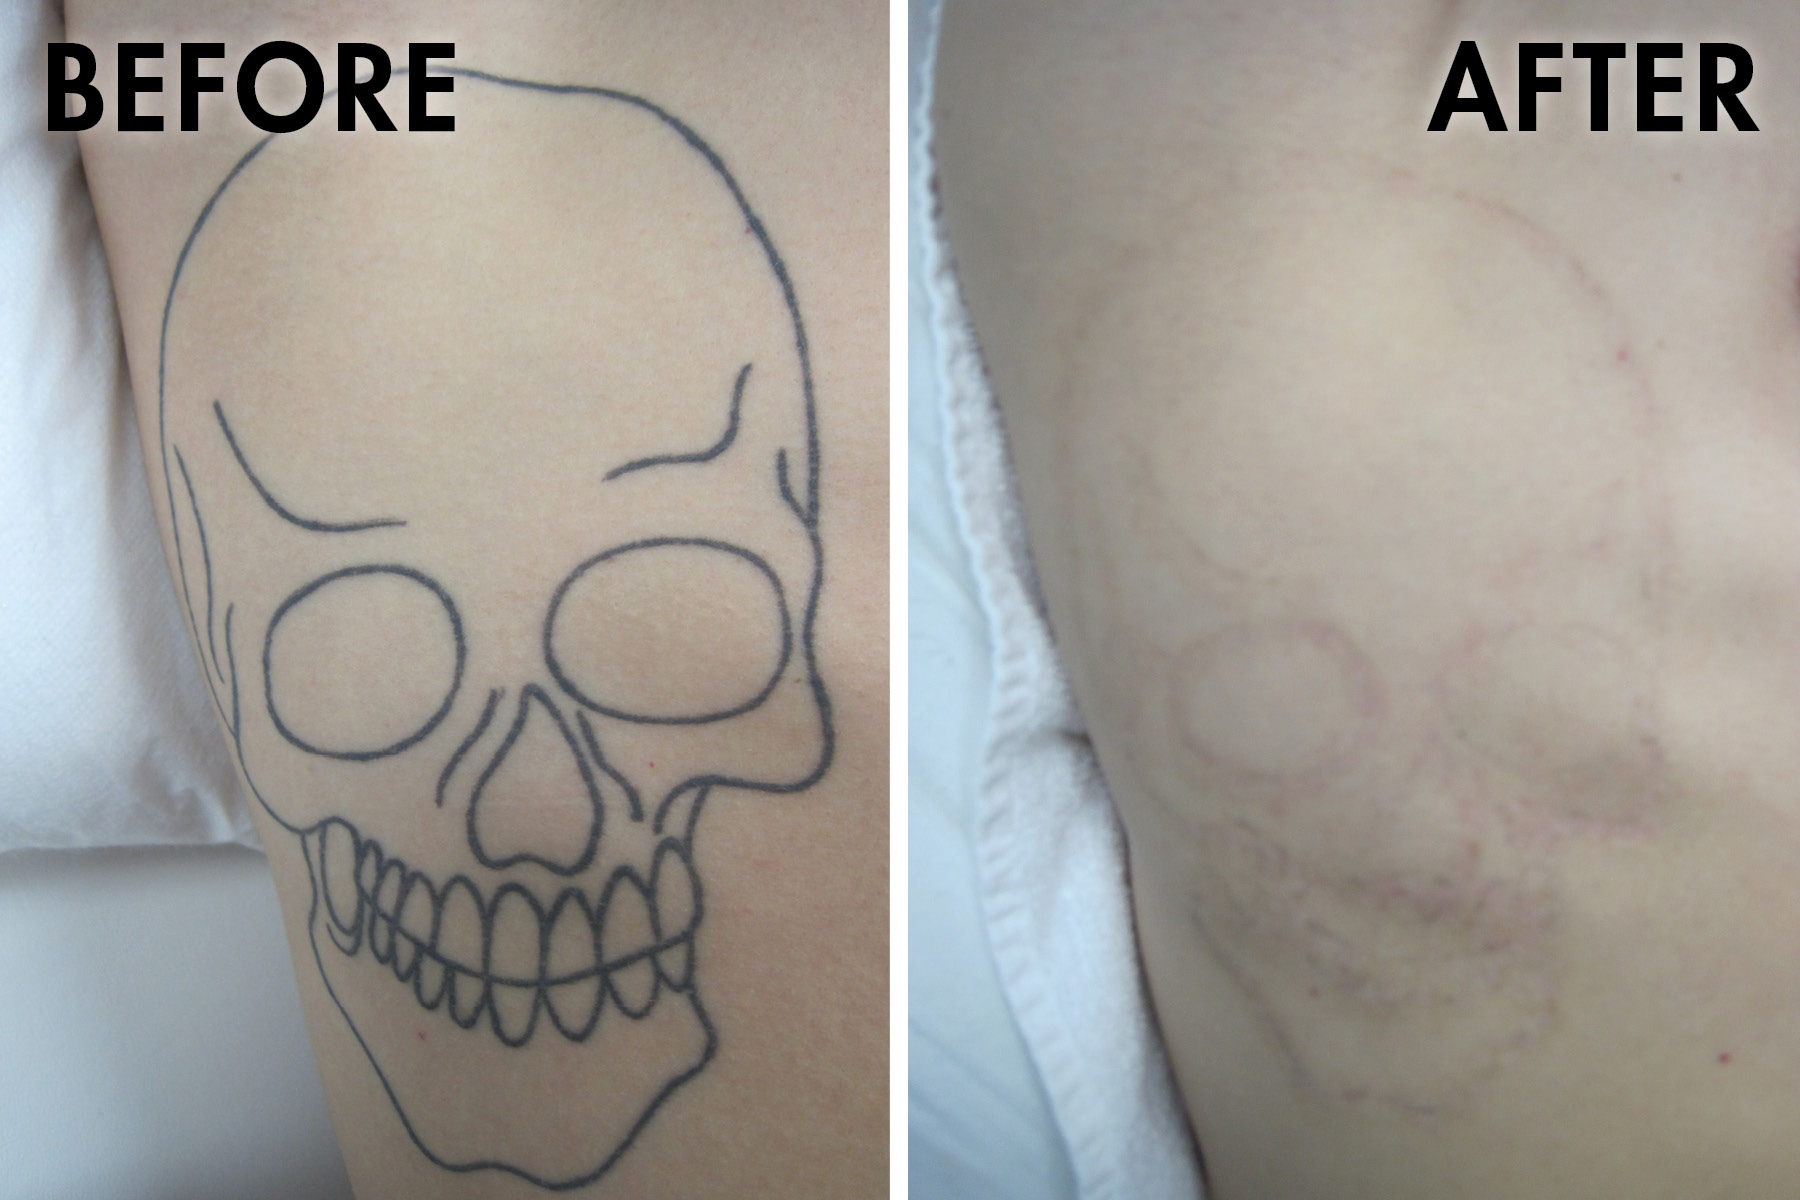 Tattoo_before_after.jpg